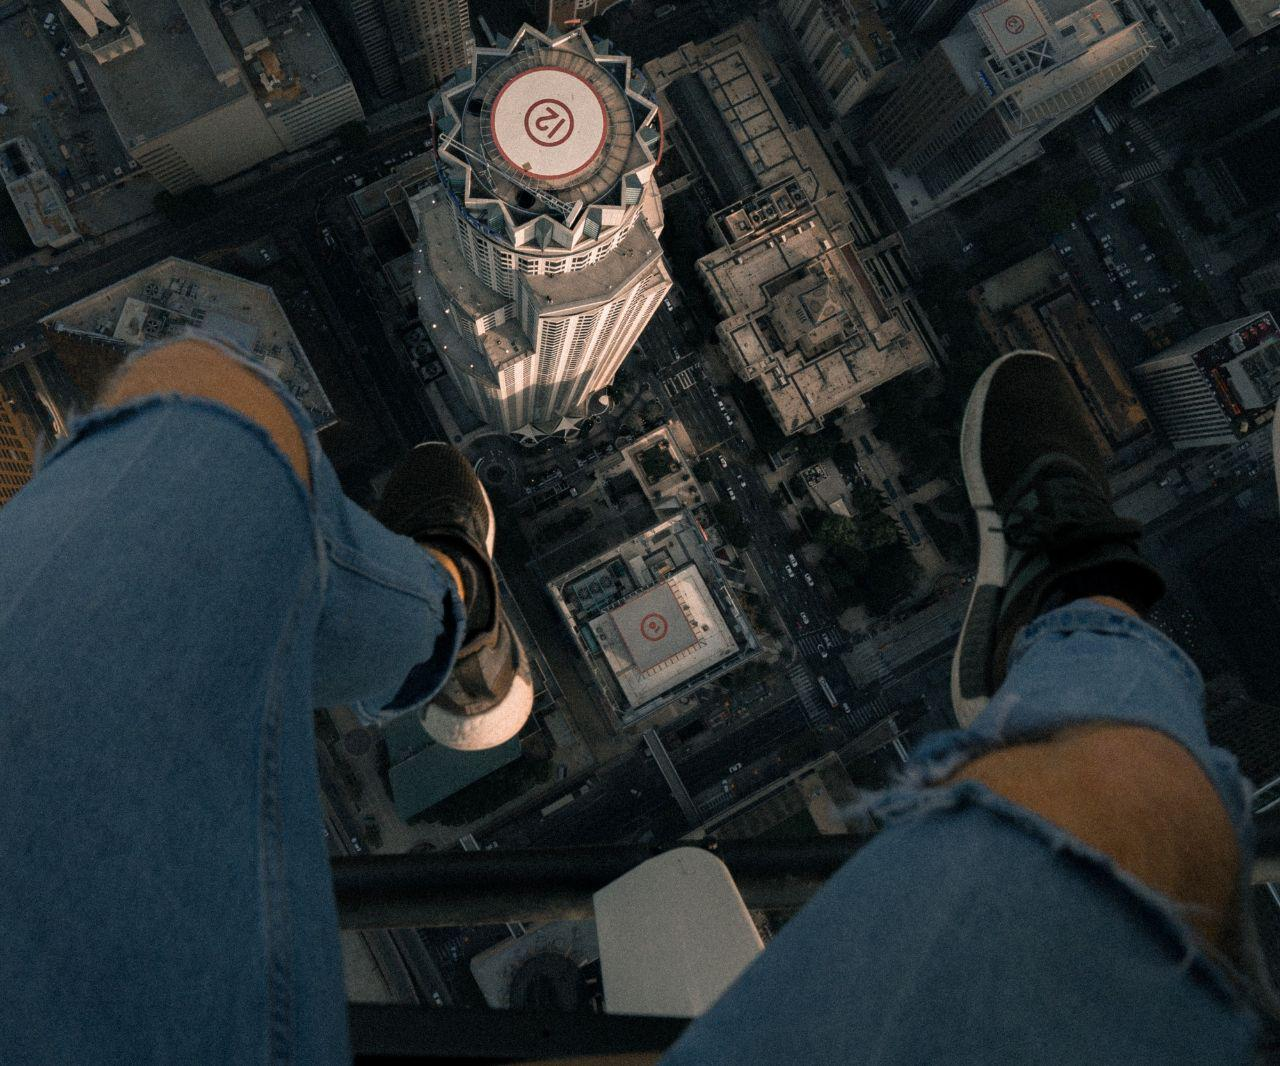 image of legs dangling over edge of building